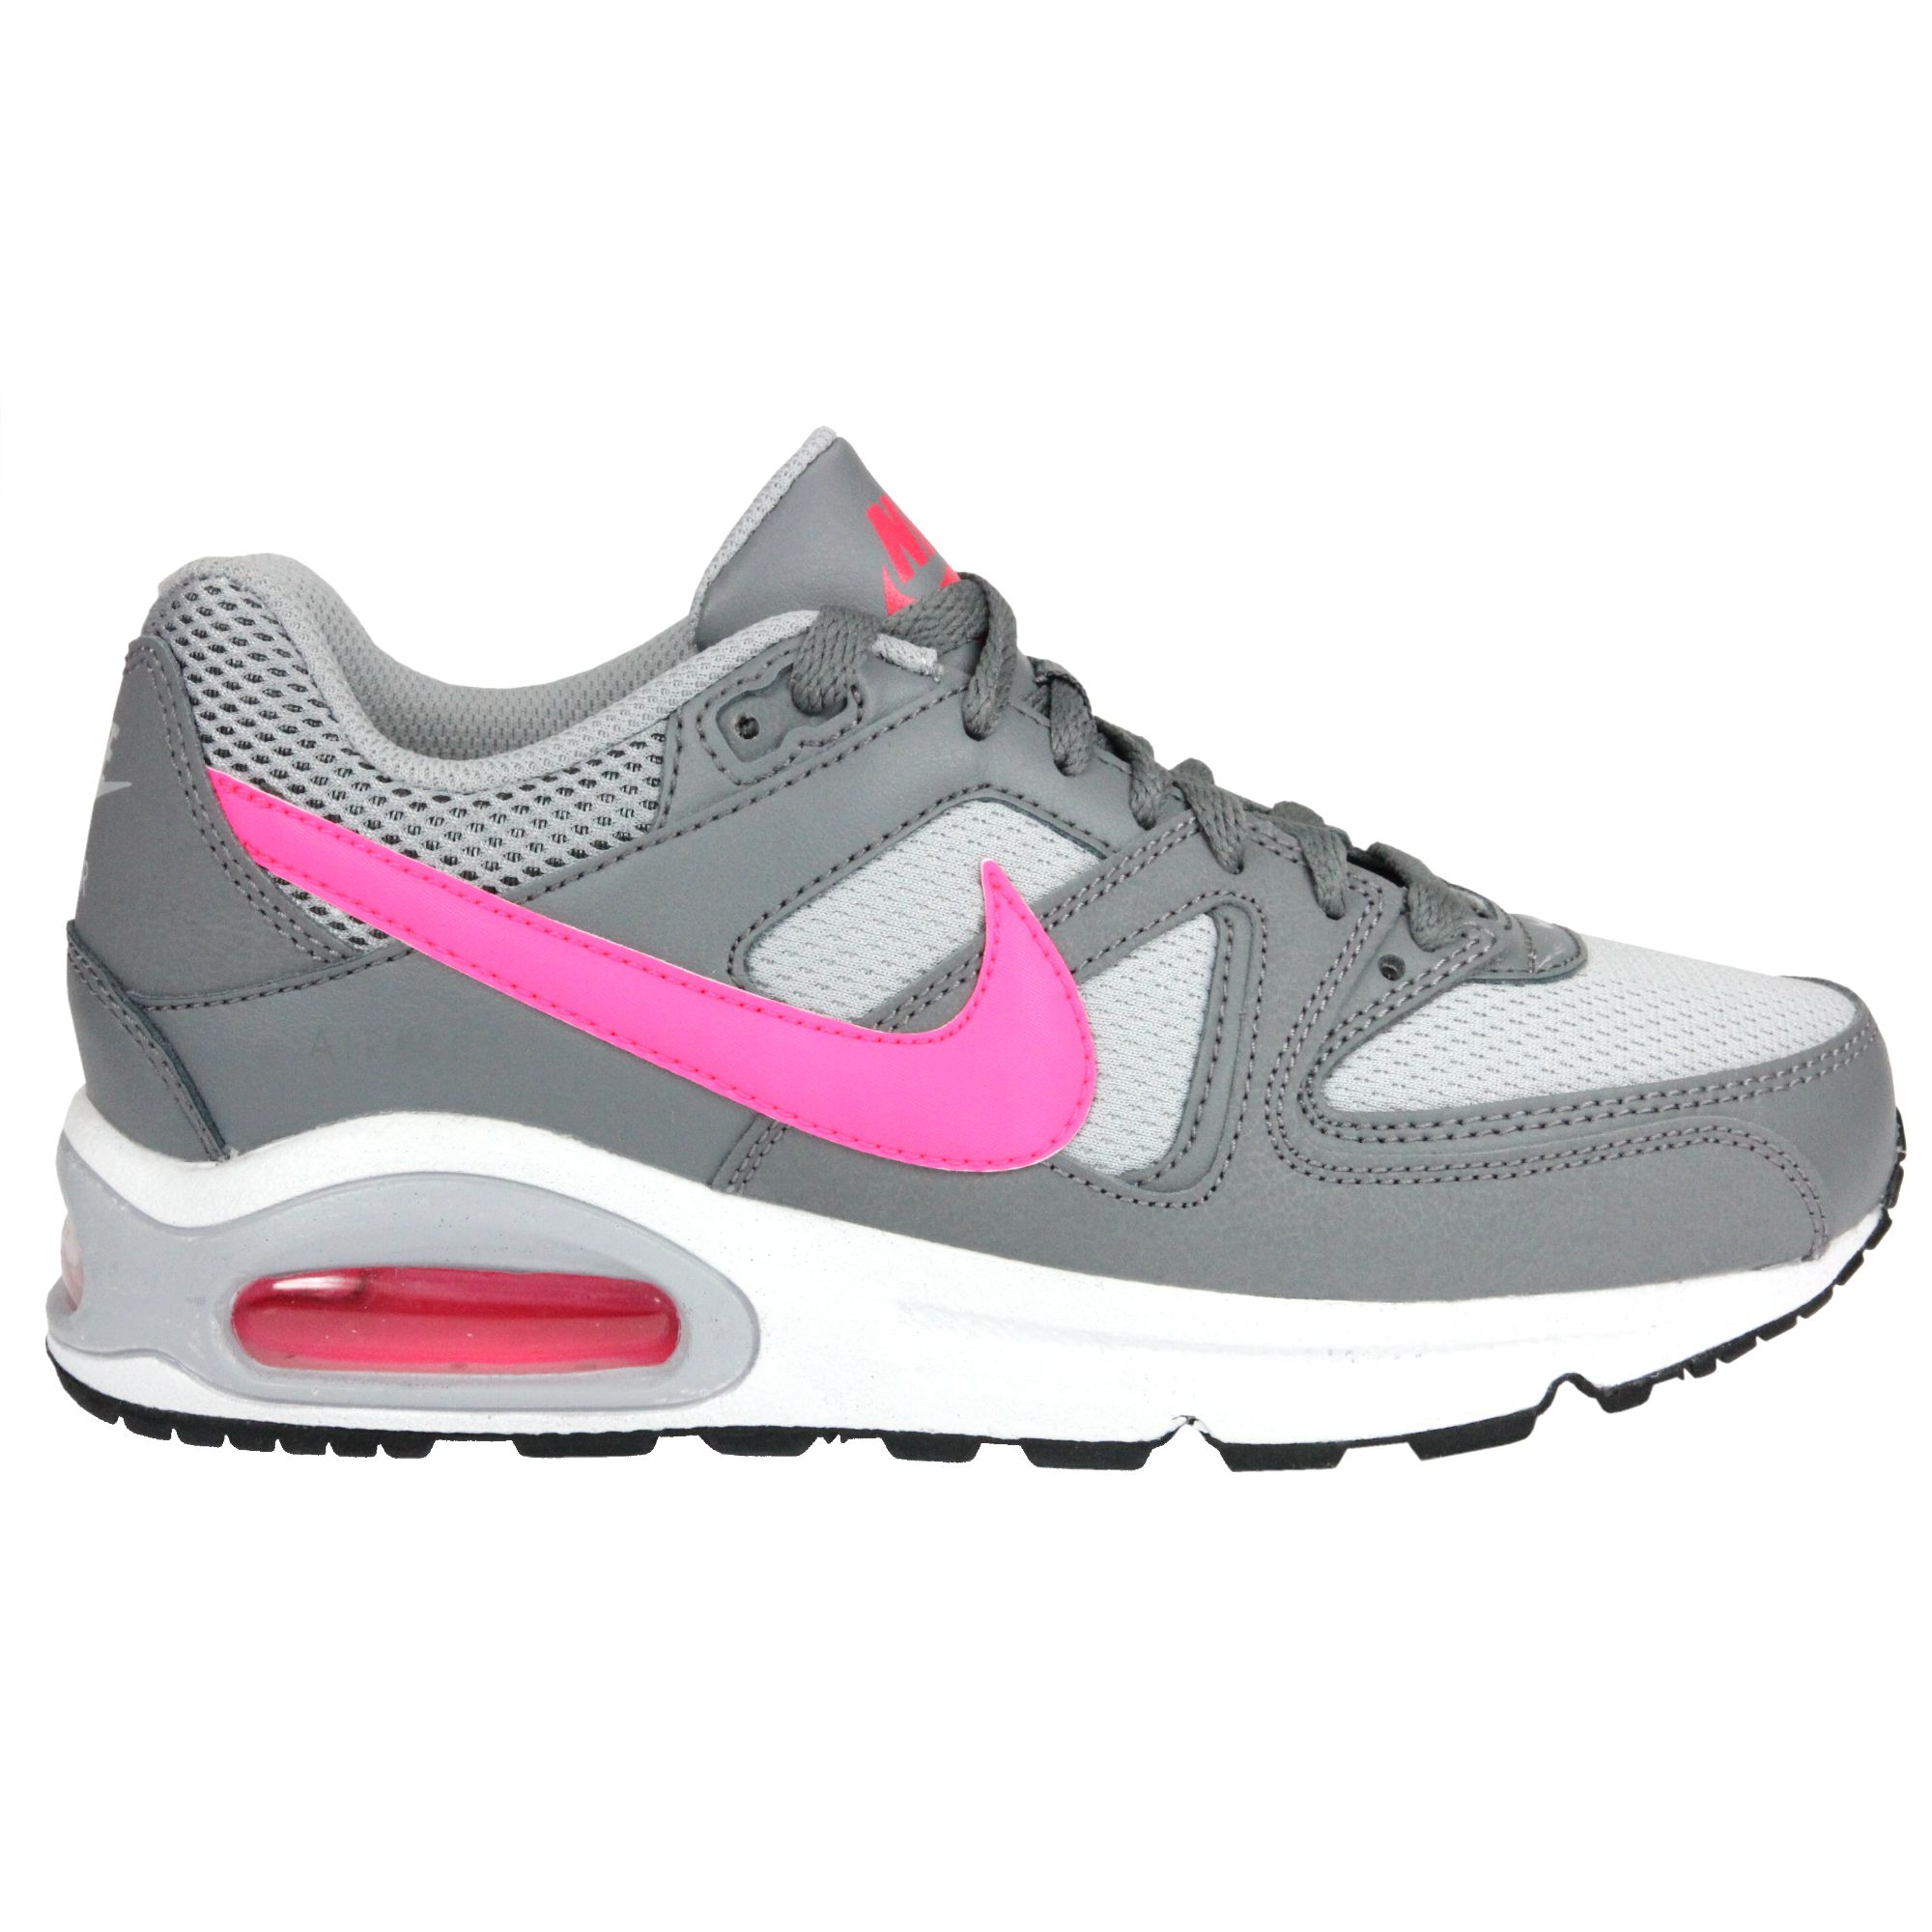 nike air max command gs damen kinder schuhe turnschuhe sneaker leder mesh ebay. Black Bedroom Furniture Sets. Home Design Ideas